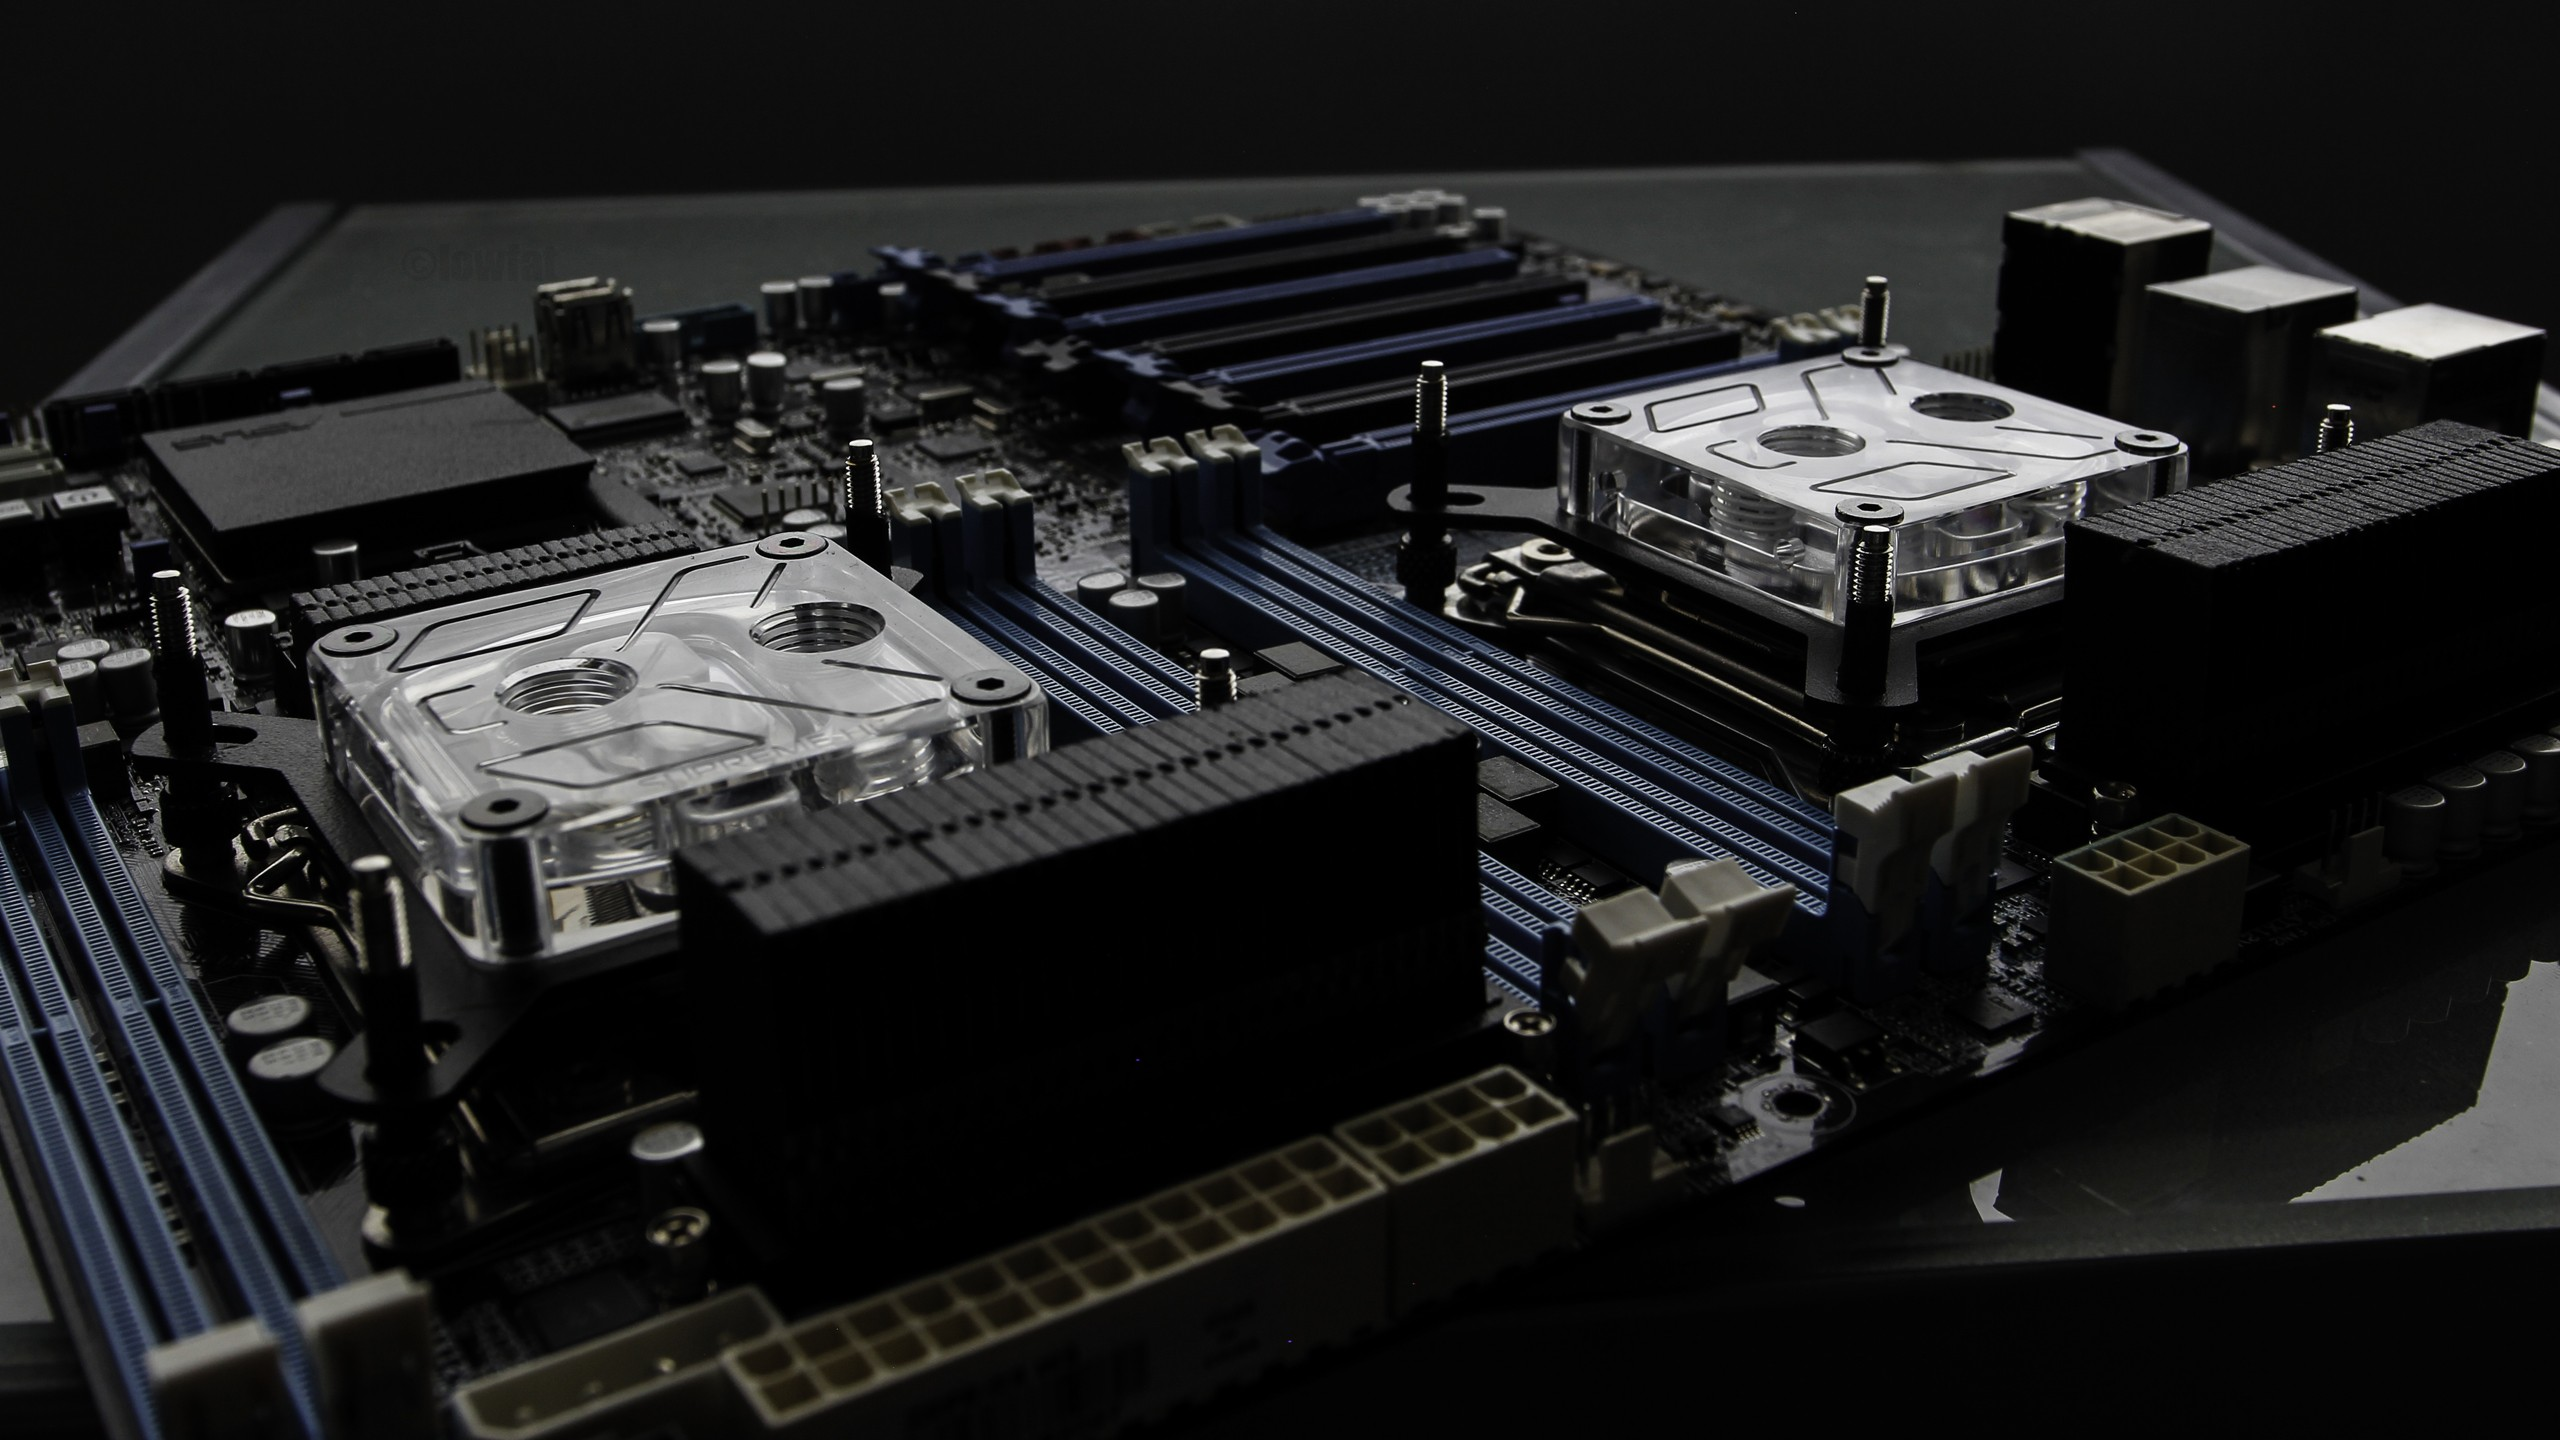 General 2560x1440 motherboards macro technology